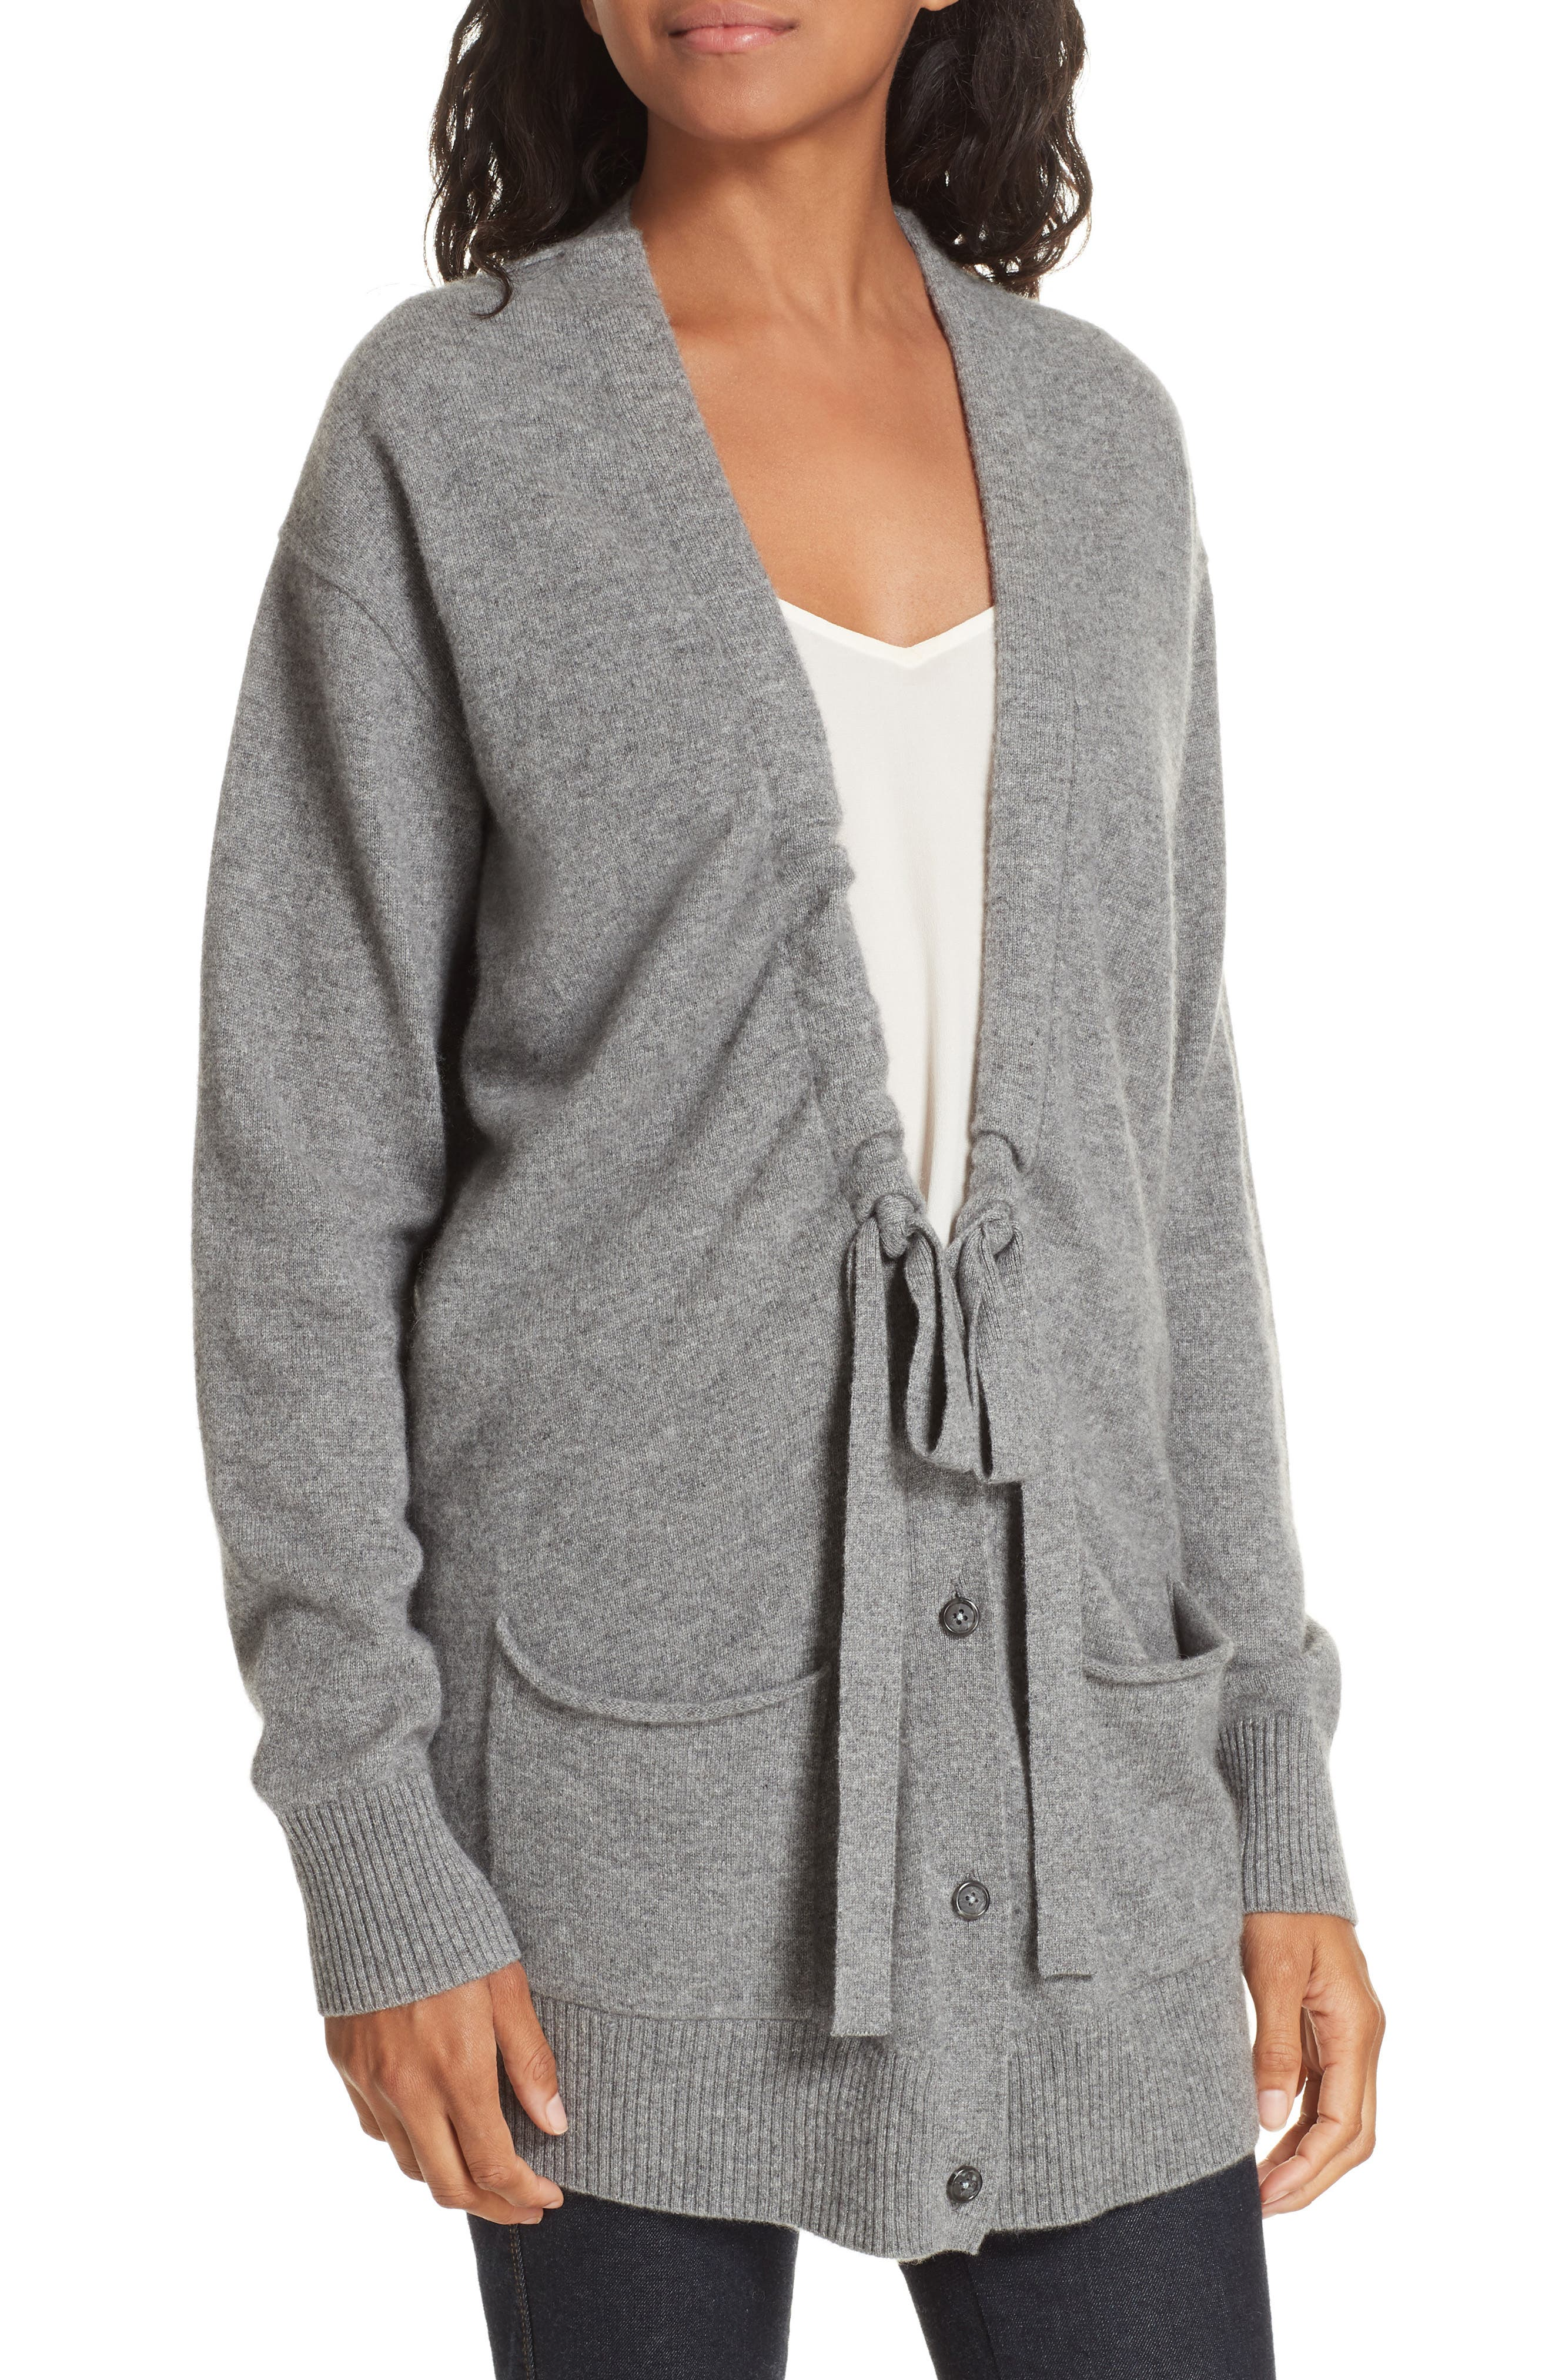 Bray Cashmere Cardigan,                             Alternate thumbnail 4, color,                             HEATHER GREY